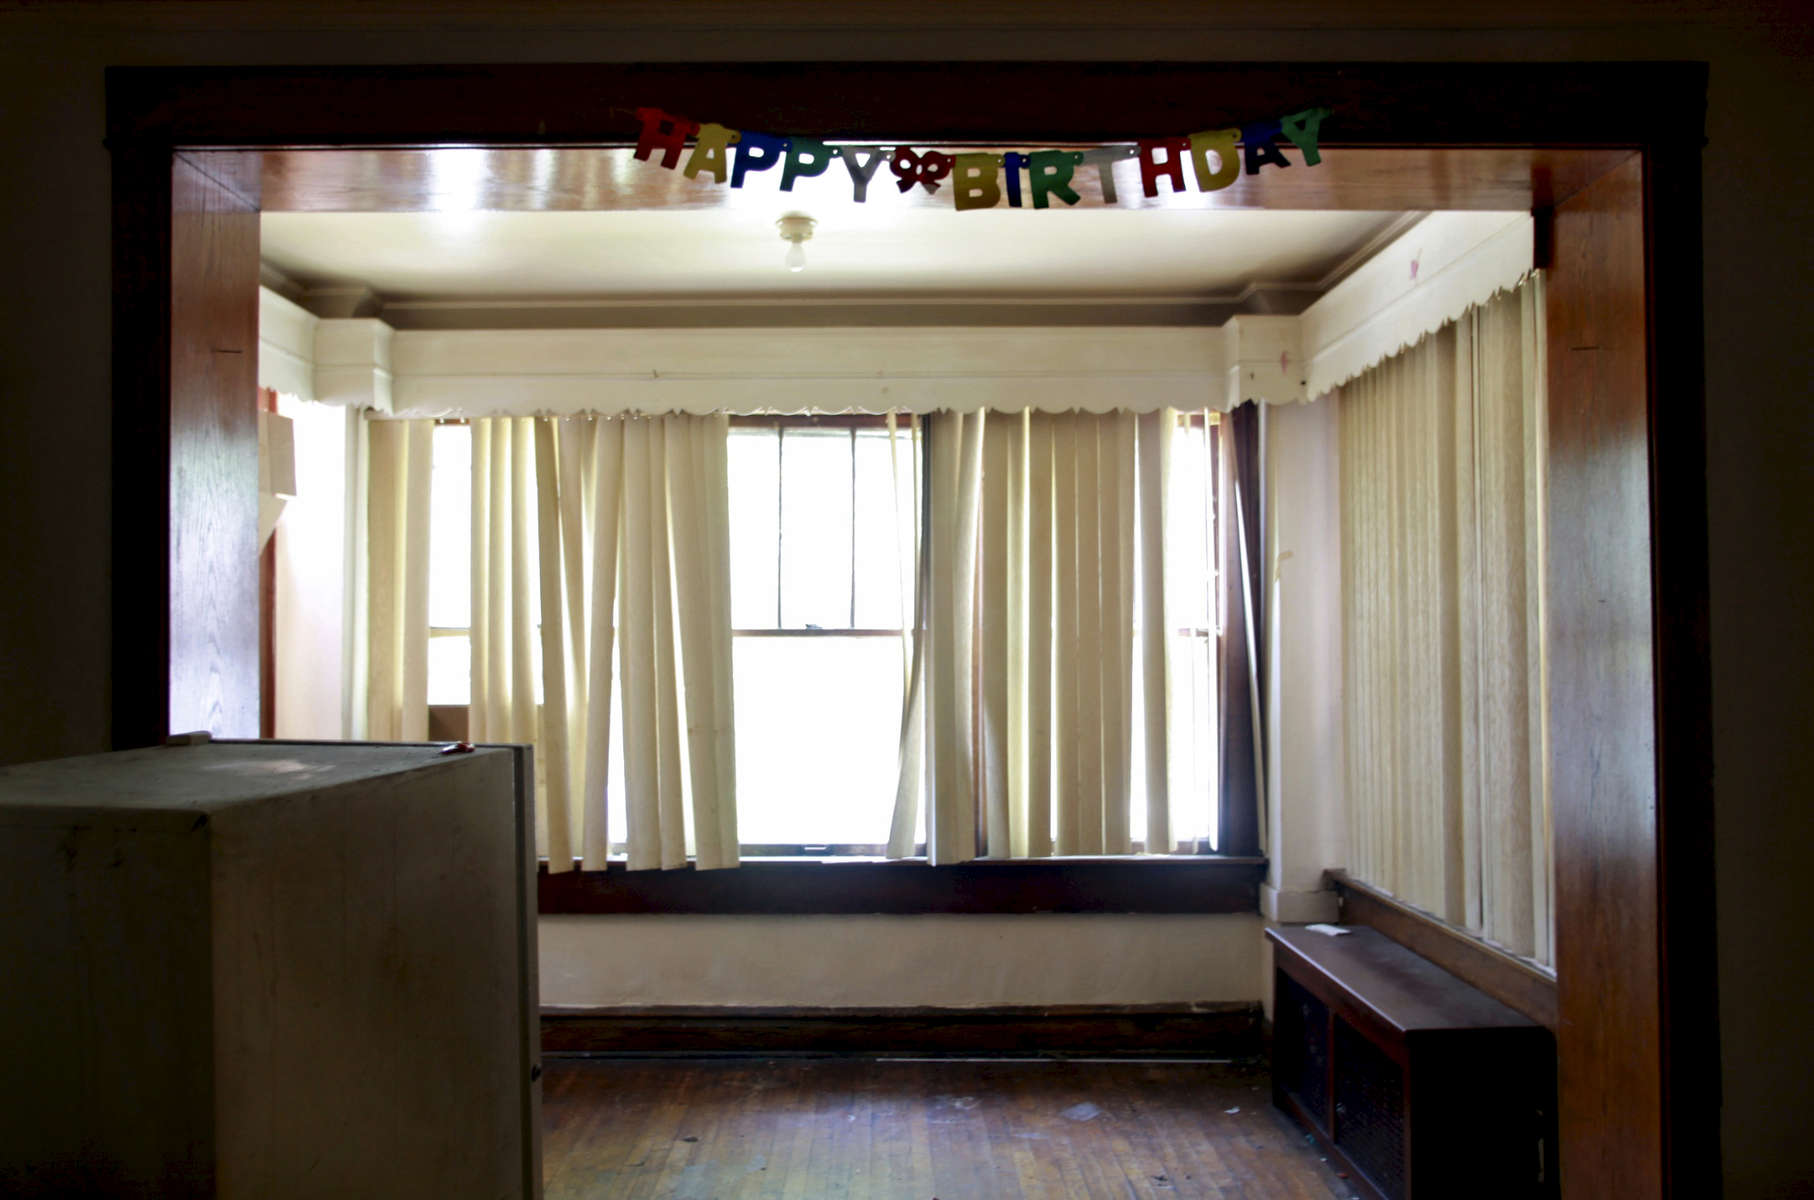 Birthday decorations still hang in the doorway between living and dining rooms in an apartment on Chicago's west side. The foreclosed building is property of US Bank, which inherited it and similar properties from Park National Bank earlier this year.